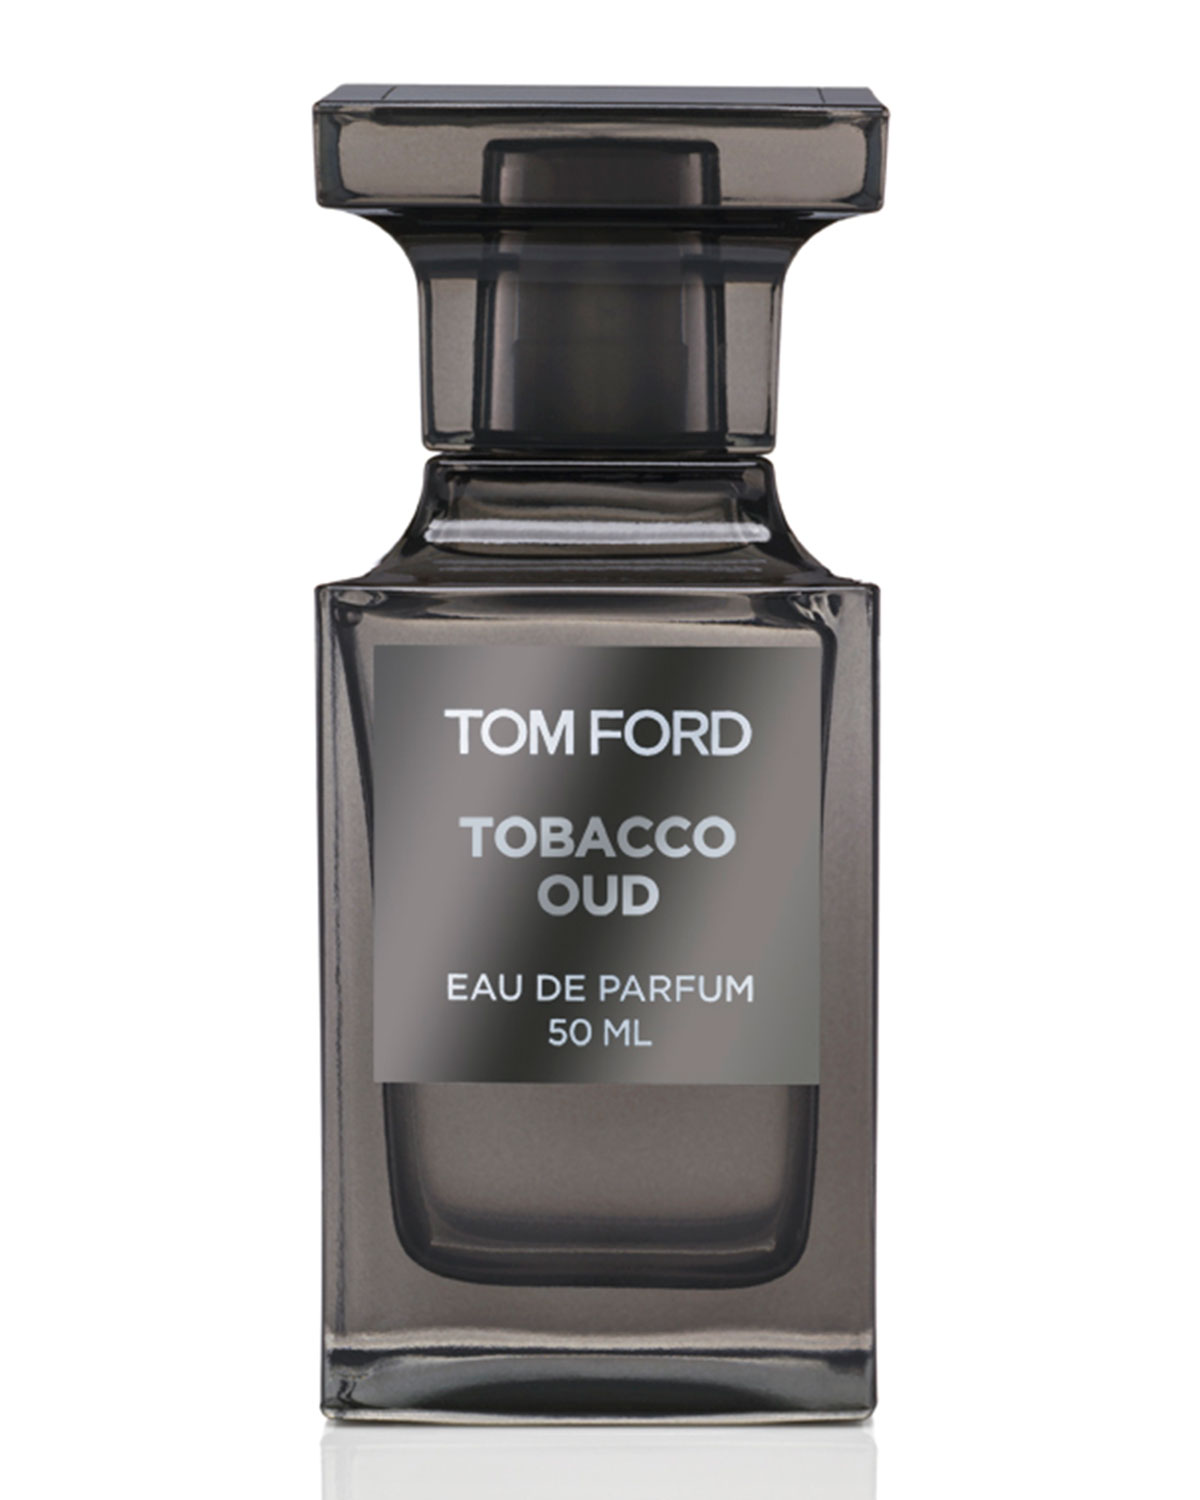 TOM FORD 1.7 oz. Tobacco Oud Eau De Parfum